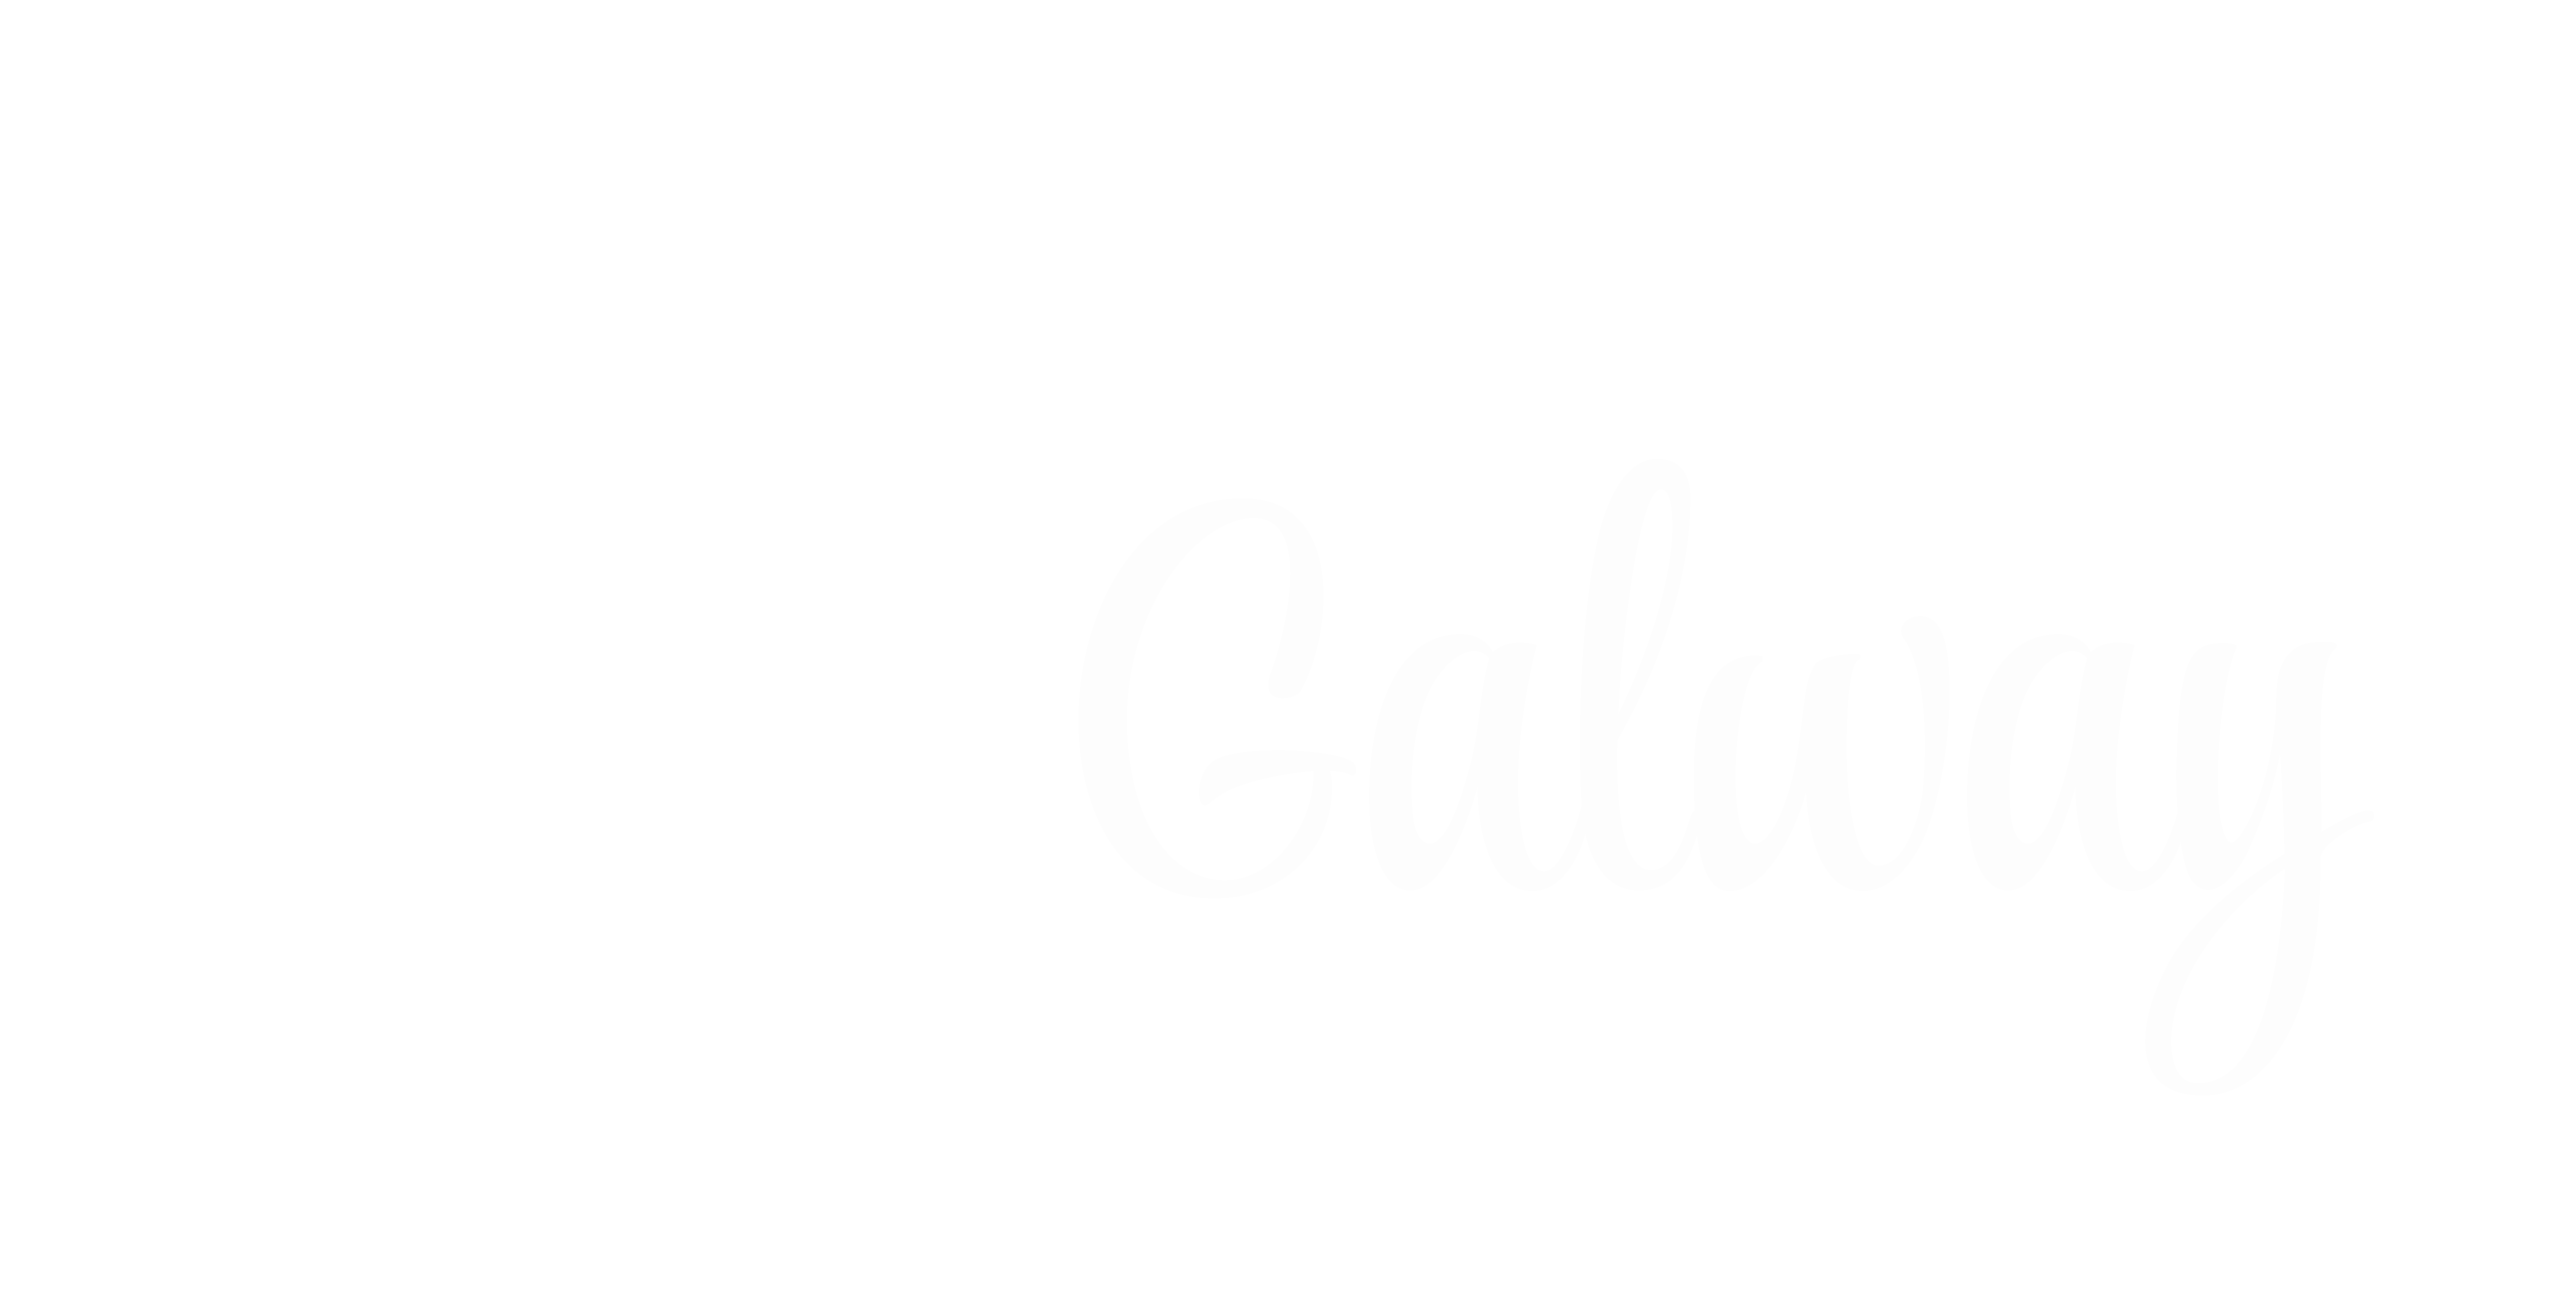 Galway Pianos